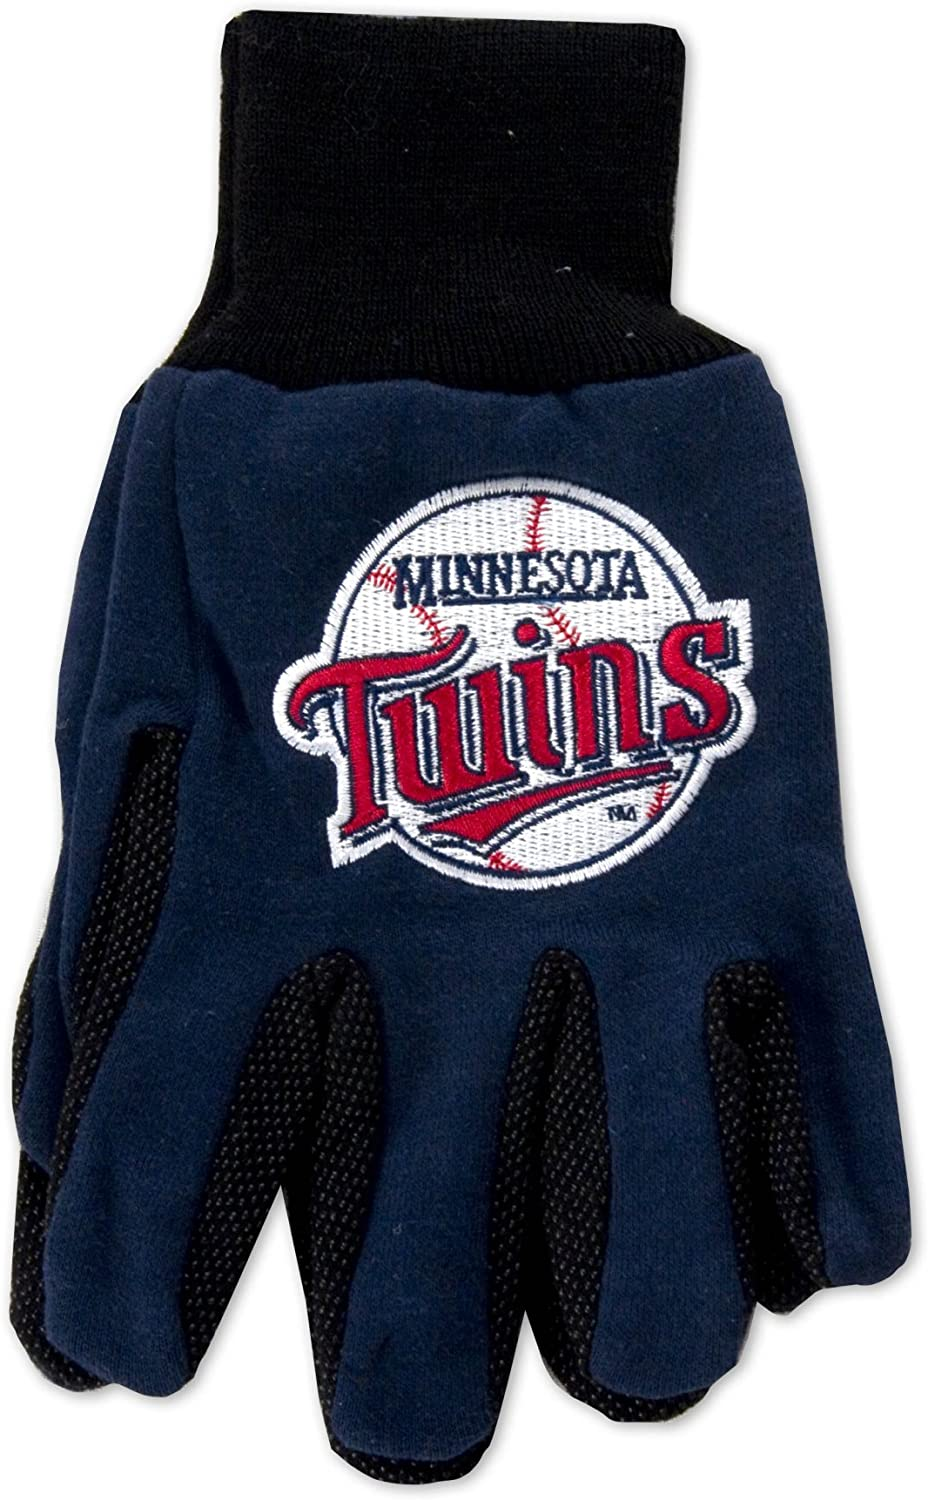 MLB Minnesota Twins Two-Tone Manufacturer OFFicial shop Blue Black Gloves Max 85% OFF